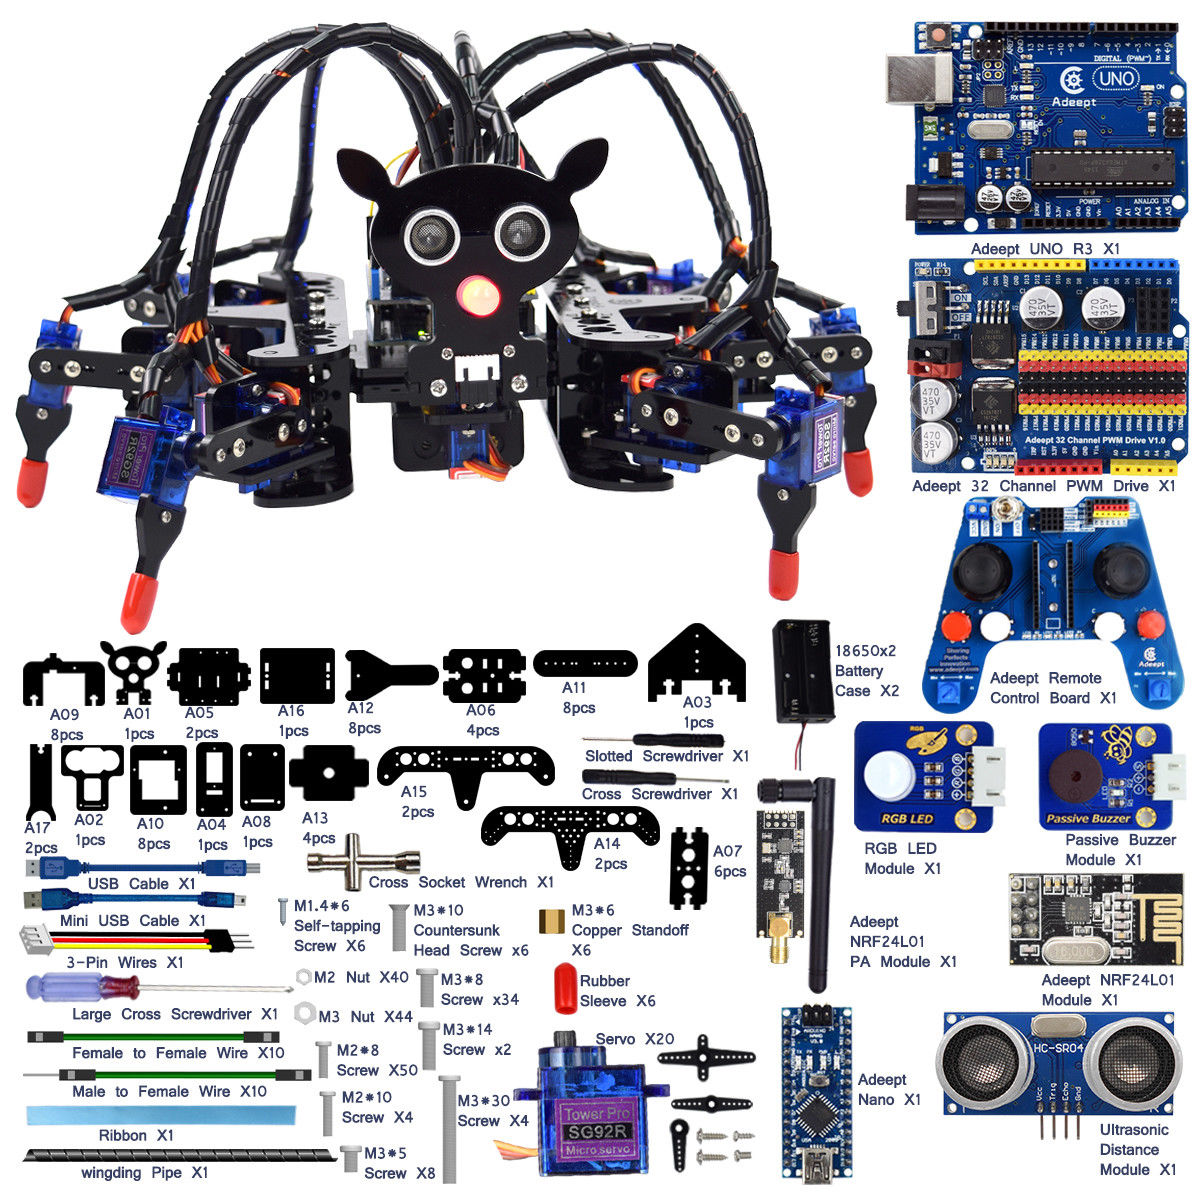 Adeept Hexapod 6 Legs Spider Robot Kit for Arduino UNO R3 by